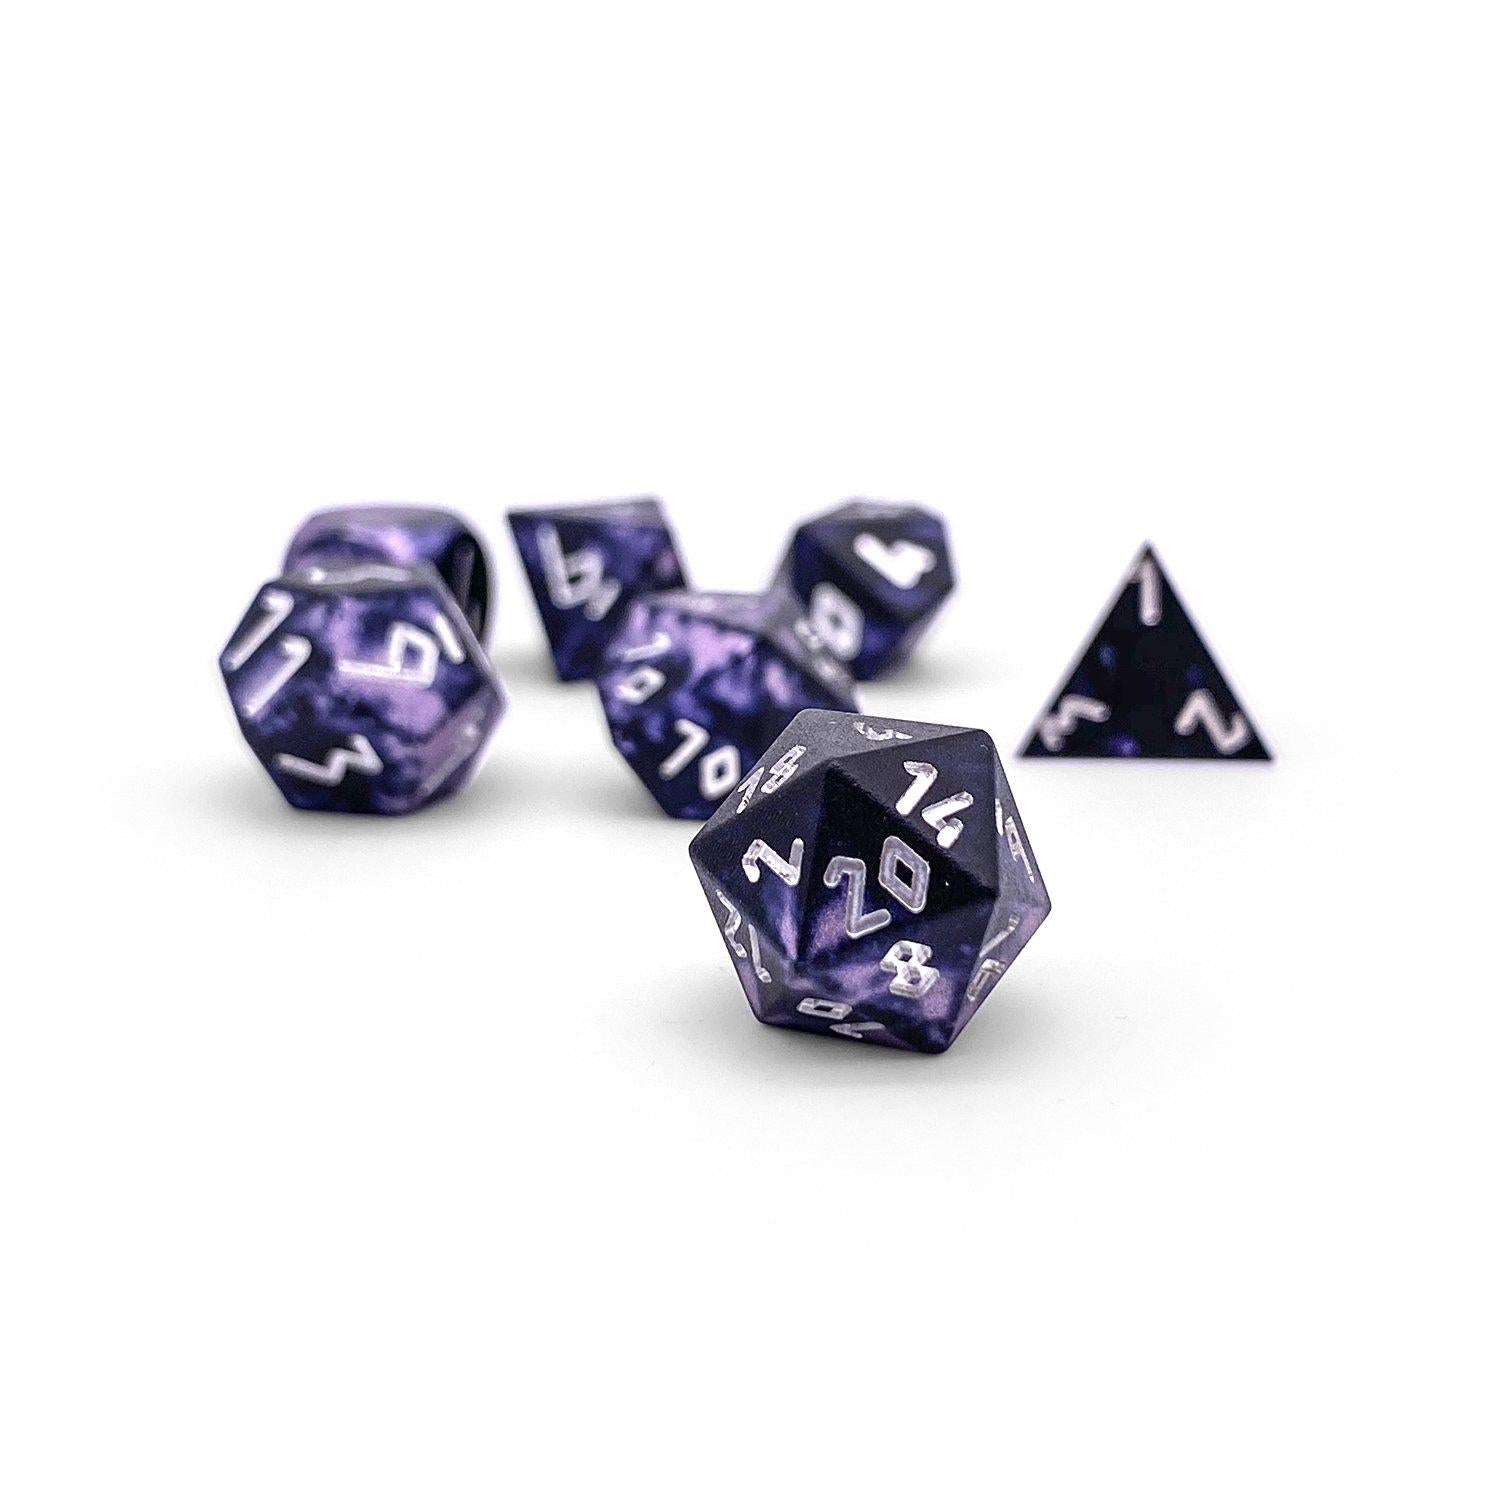 Dracolich Wondrous Pebble ™ Dice - 10mm 6063 Aircraft Grade Aluminum Mini